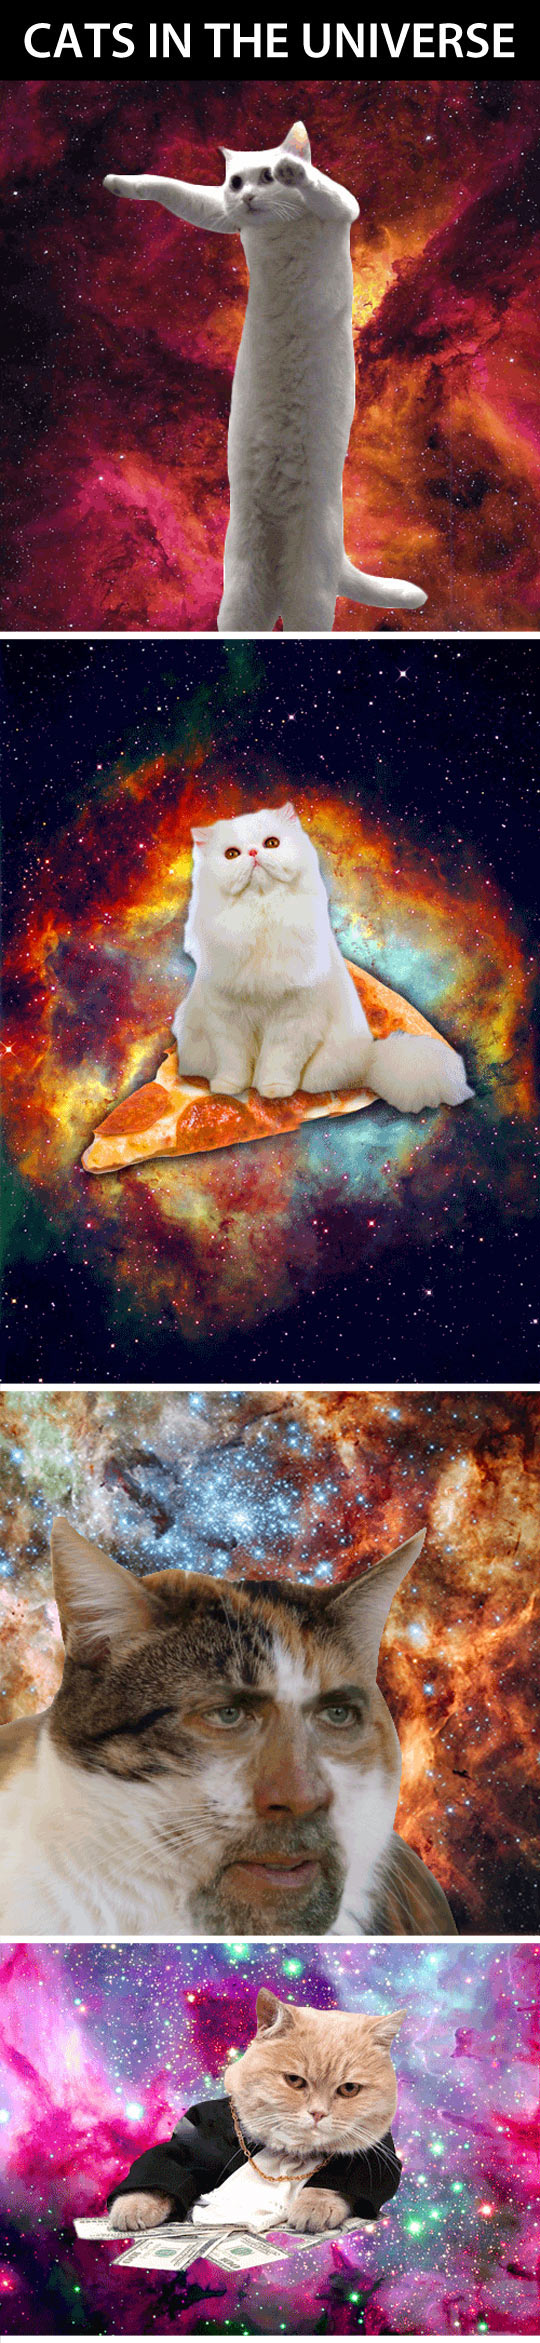 funny-cat-disguise-universe-cosmos